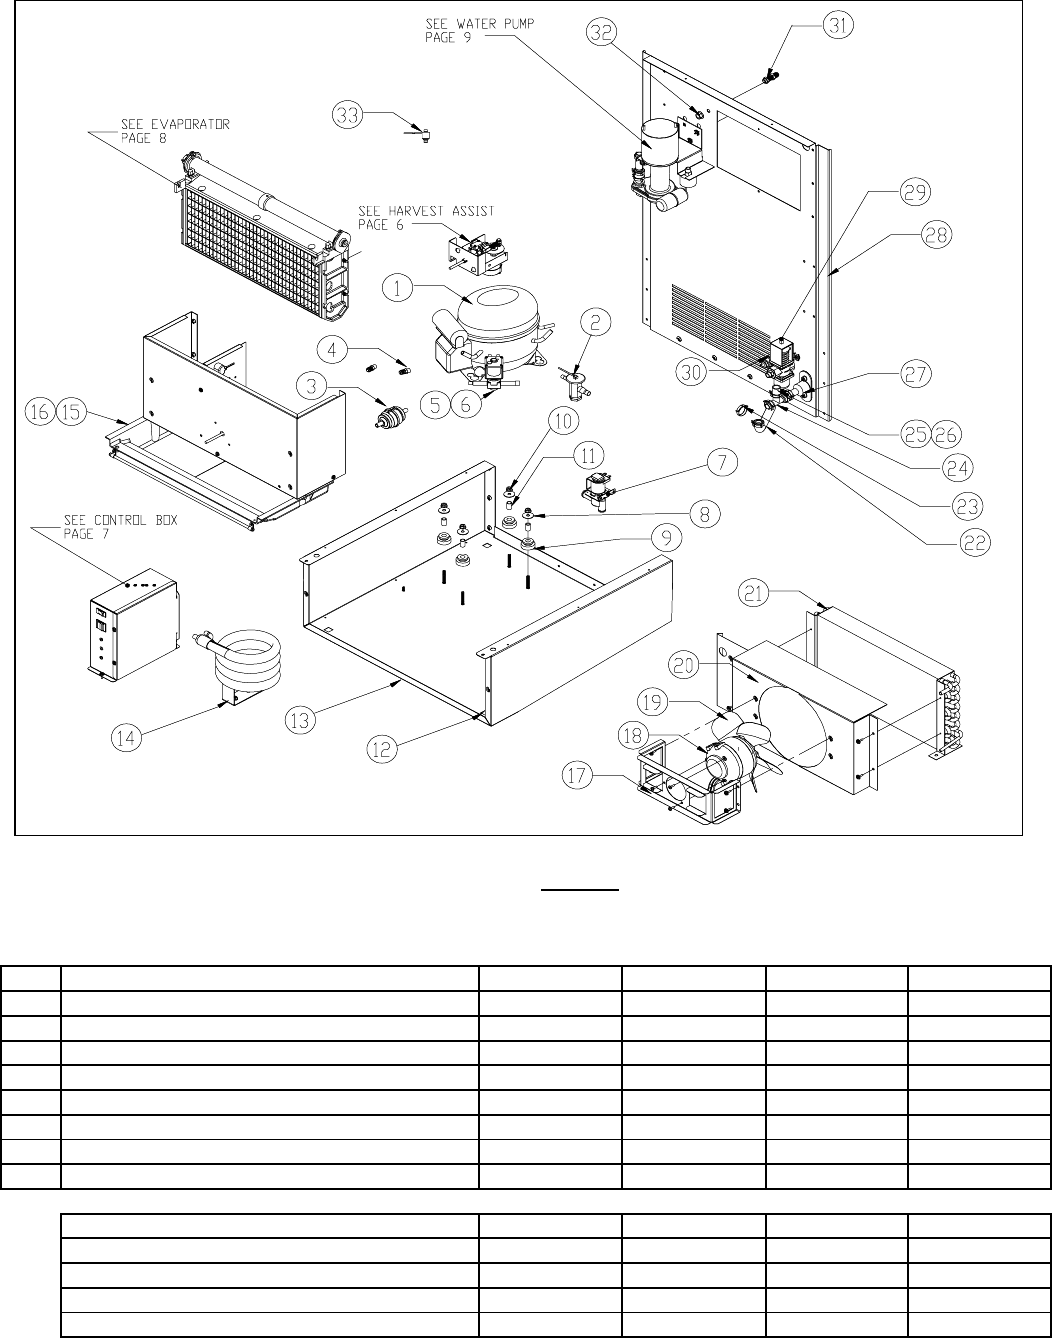 be77eea0 7f6f 4c10 ac13 e68e0ef680b3 bg6 page 6 of ice o matic ice maker iceu220 user guide manualsonline com  at bayanpartner.co